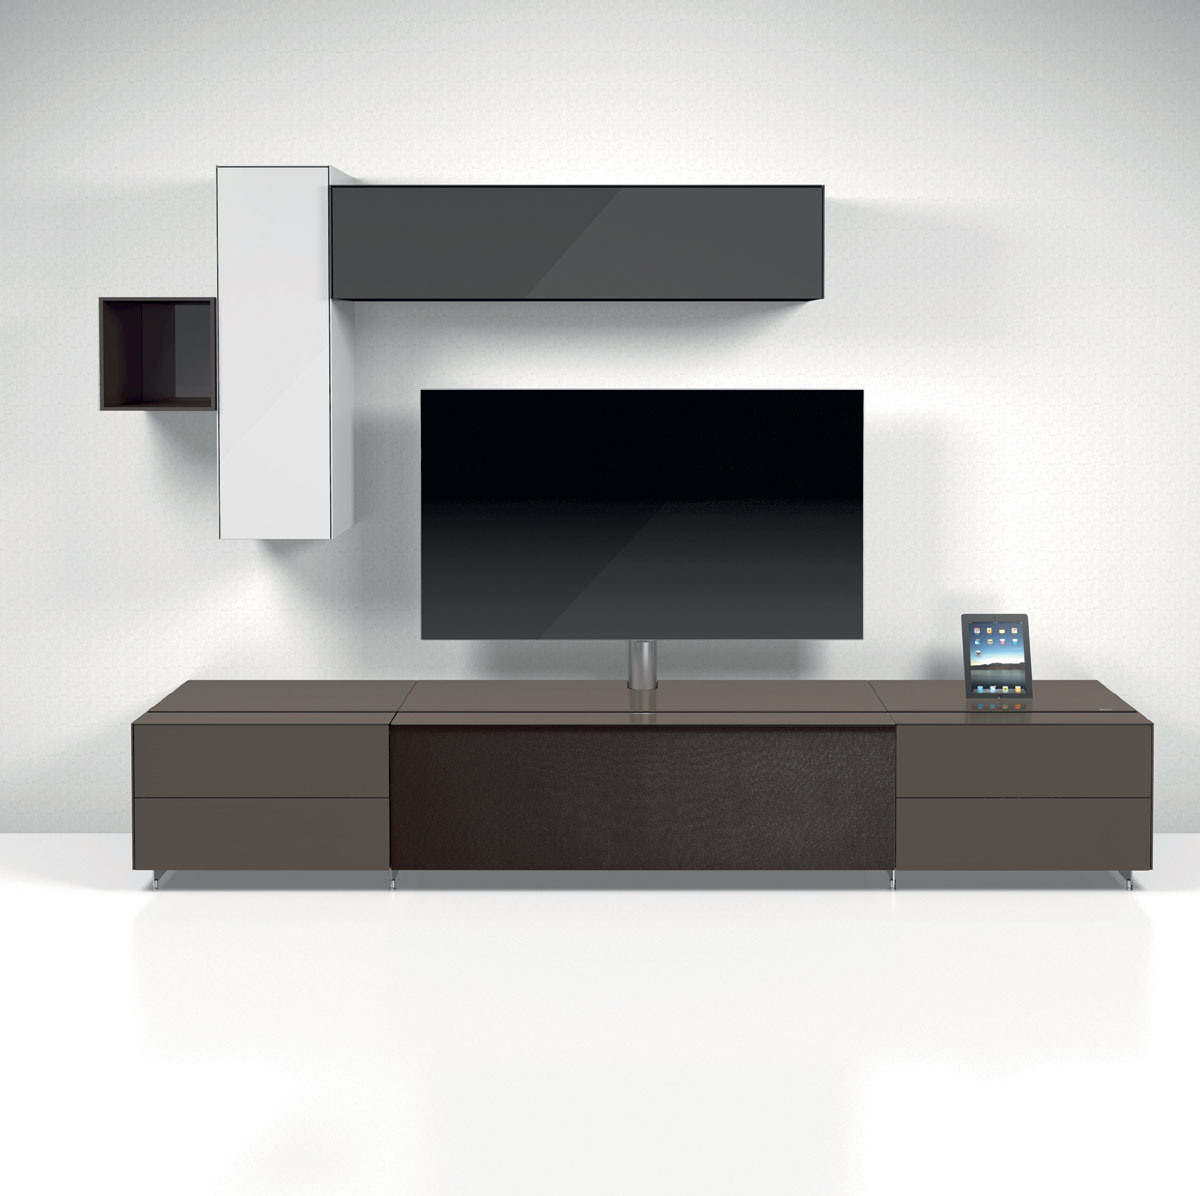 spectral cocoon tv m bel co2 co2 sl co3 co3 sl co4 co5 01 2201. Black Bedroom Furniture Sets. Home Design Ideas